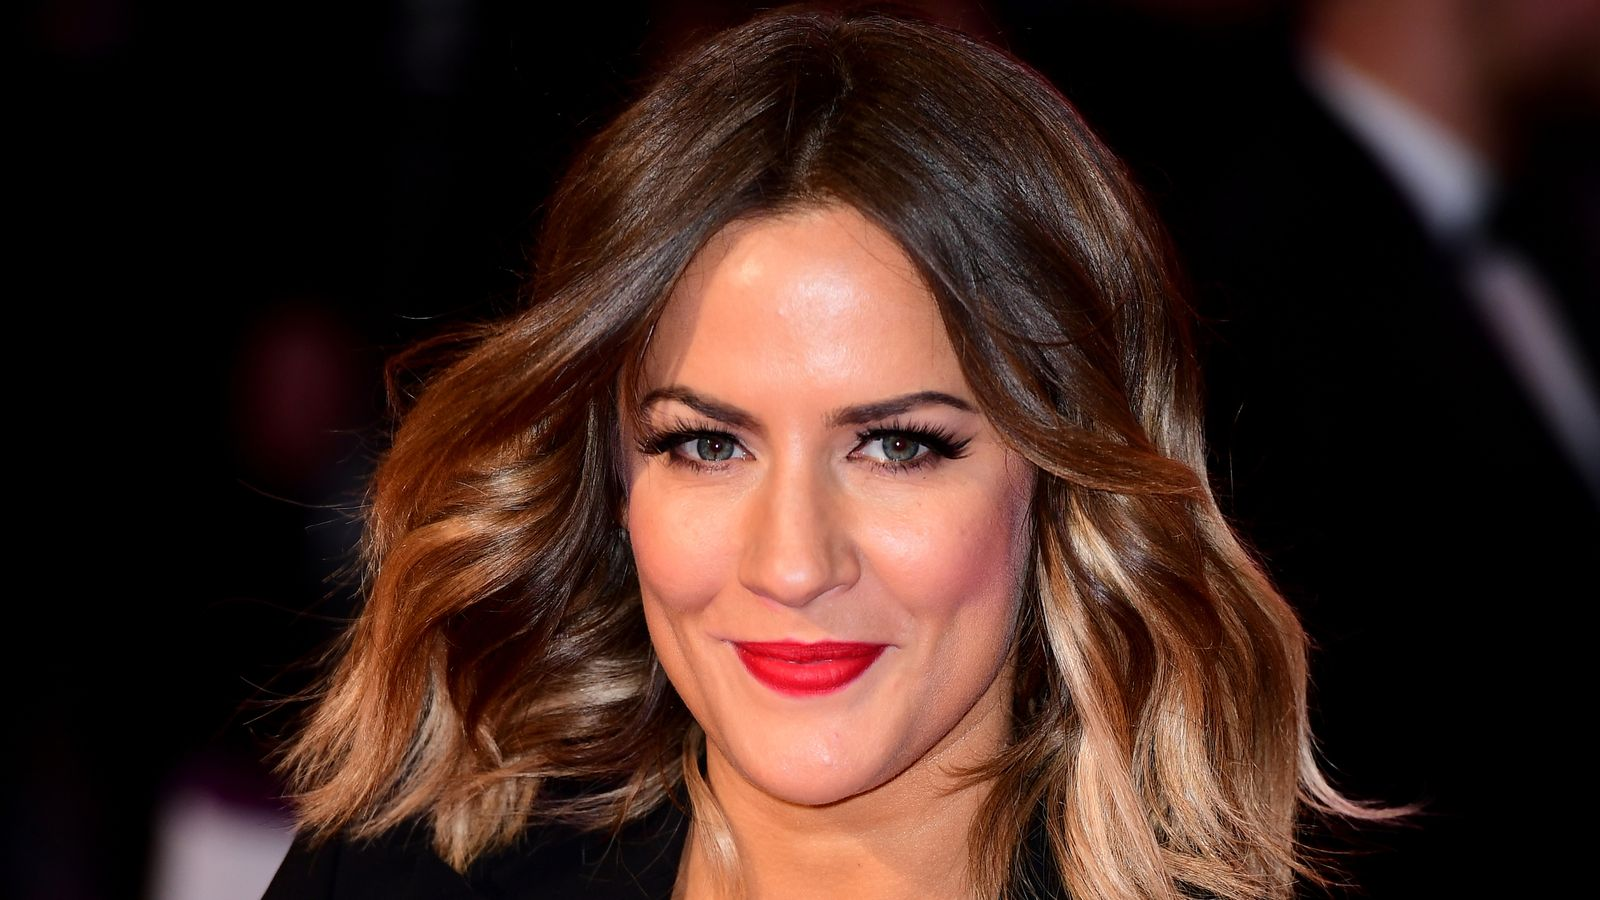 Ambulance called to Caroline Flack's house day before her death